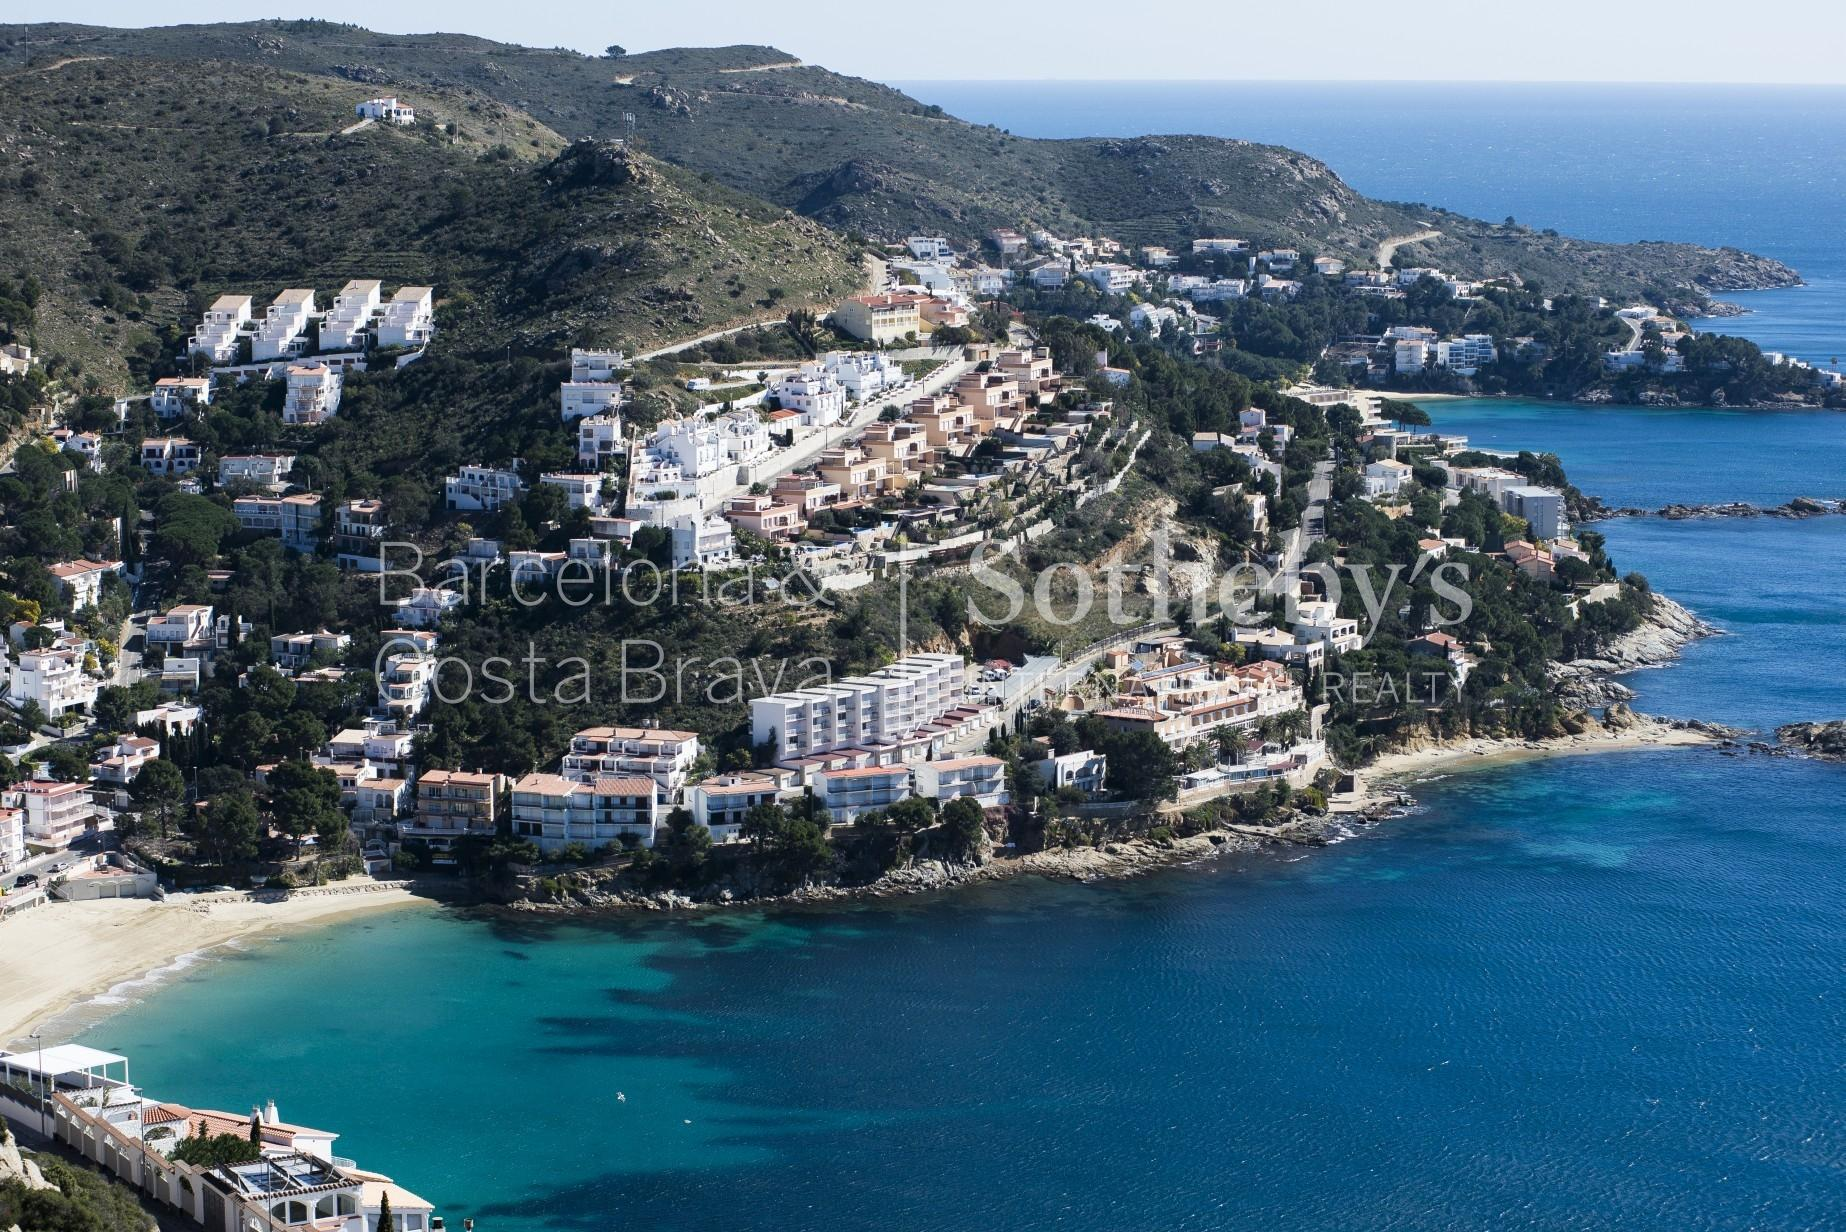 Apartment for Sale at New construction duplex with sea views near beach Roses, Costa Brava 17480 Spain